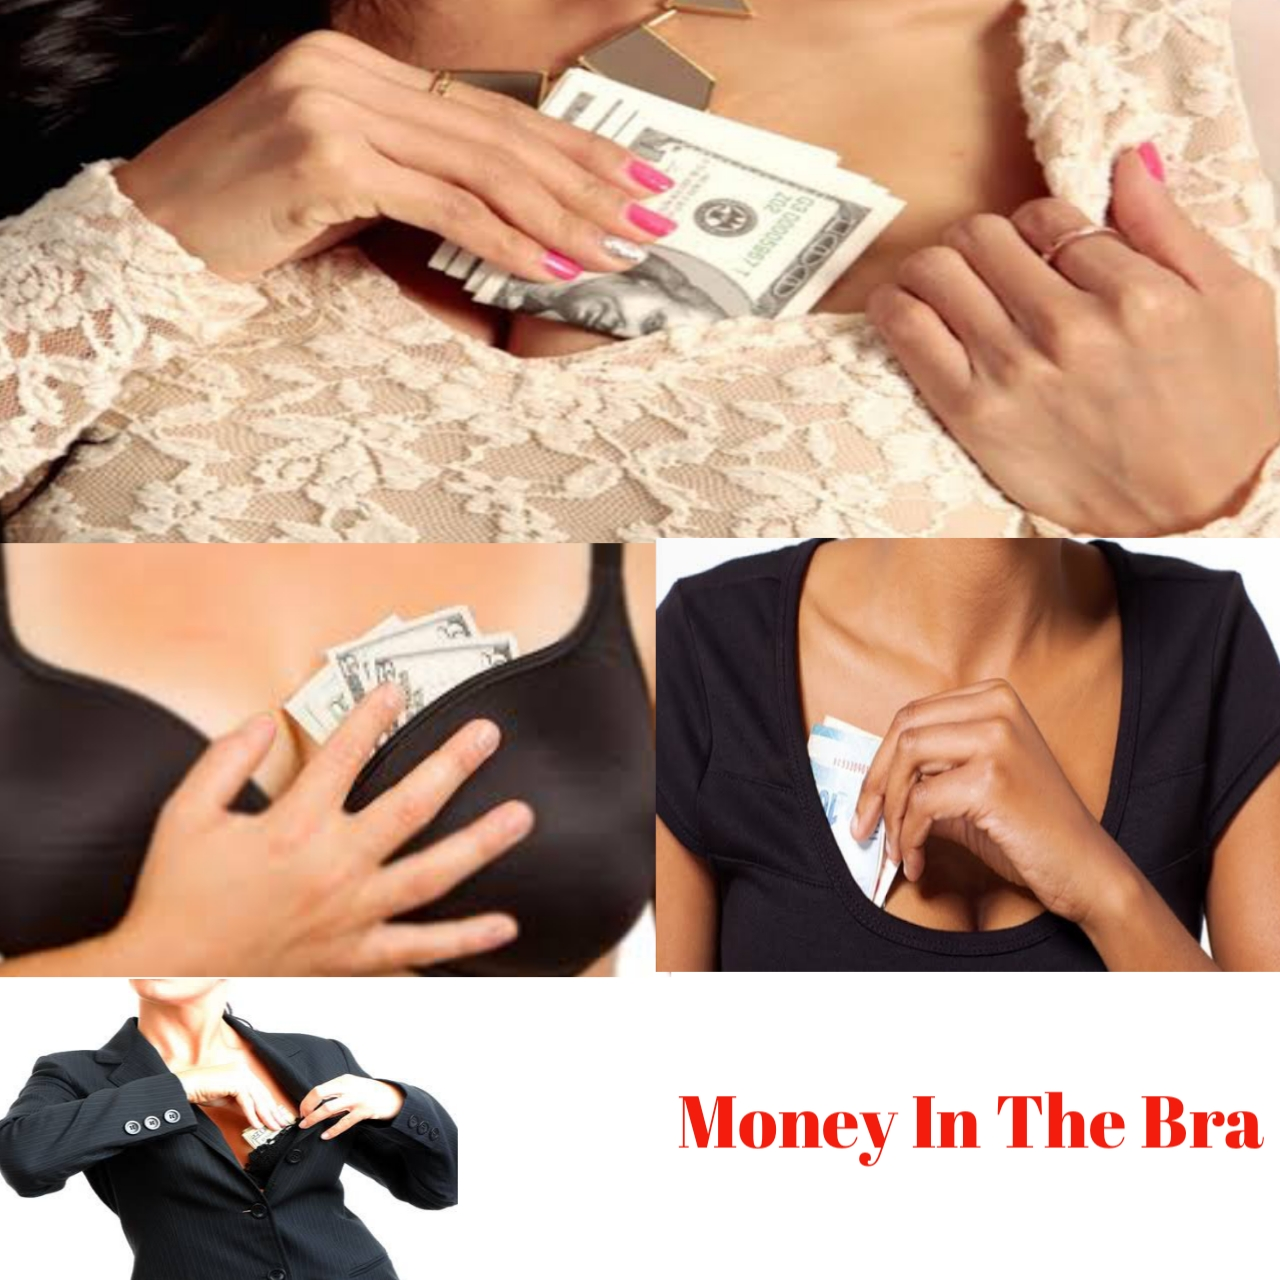 Money in the Bra